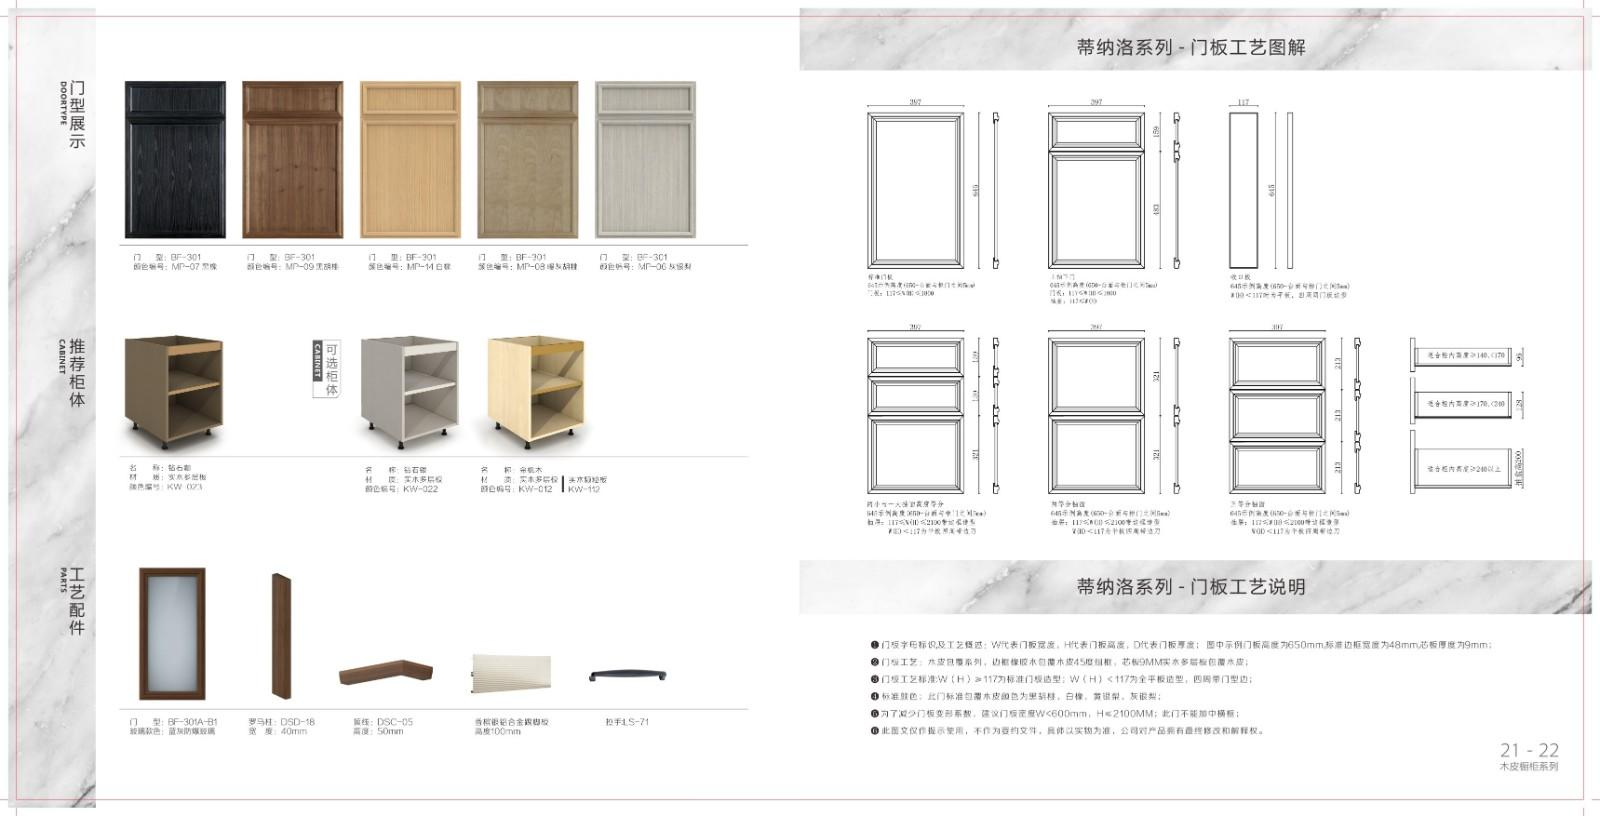 Sendiao Furniture Top modular kitchen cabinets manufacturers chateau